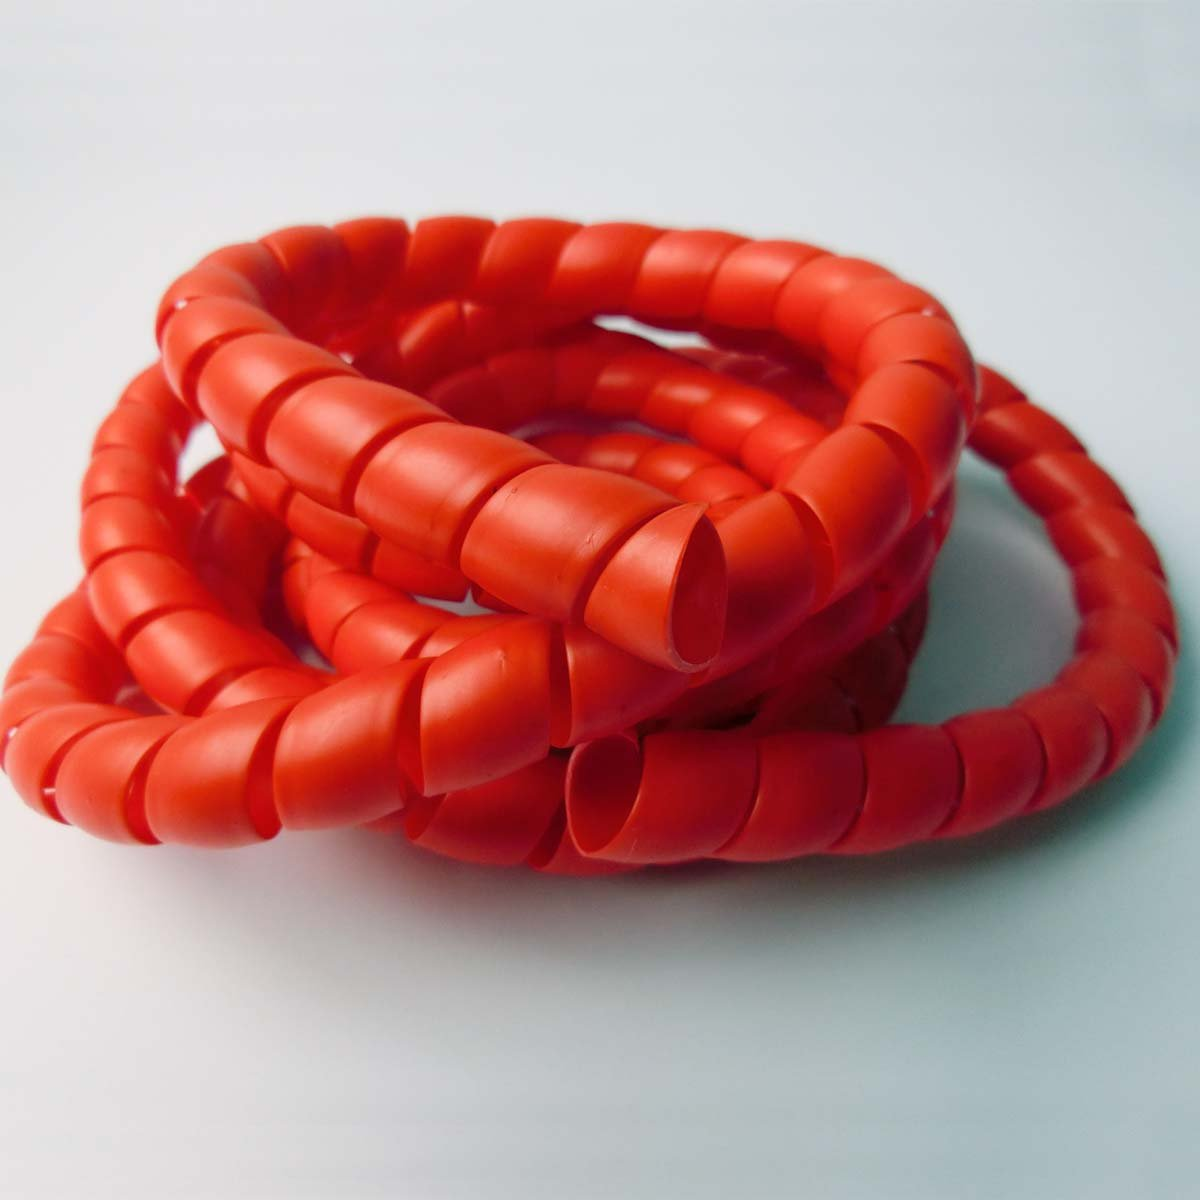 Outside Dia Spiral Wire Wrap Tube PC Manage Cord Self-Gripping Cable 79/Piece (Red, 8mm OD 79 Length) 8mm OD 79 Length)